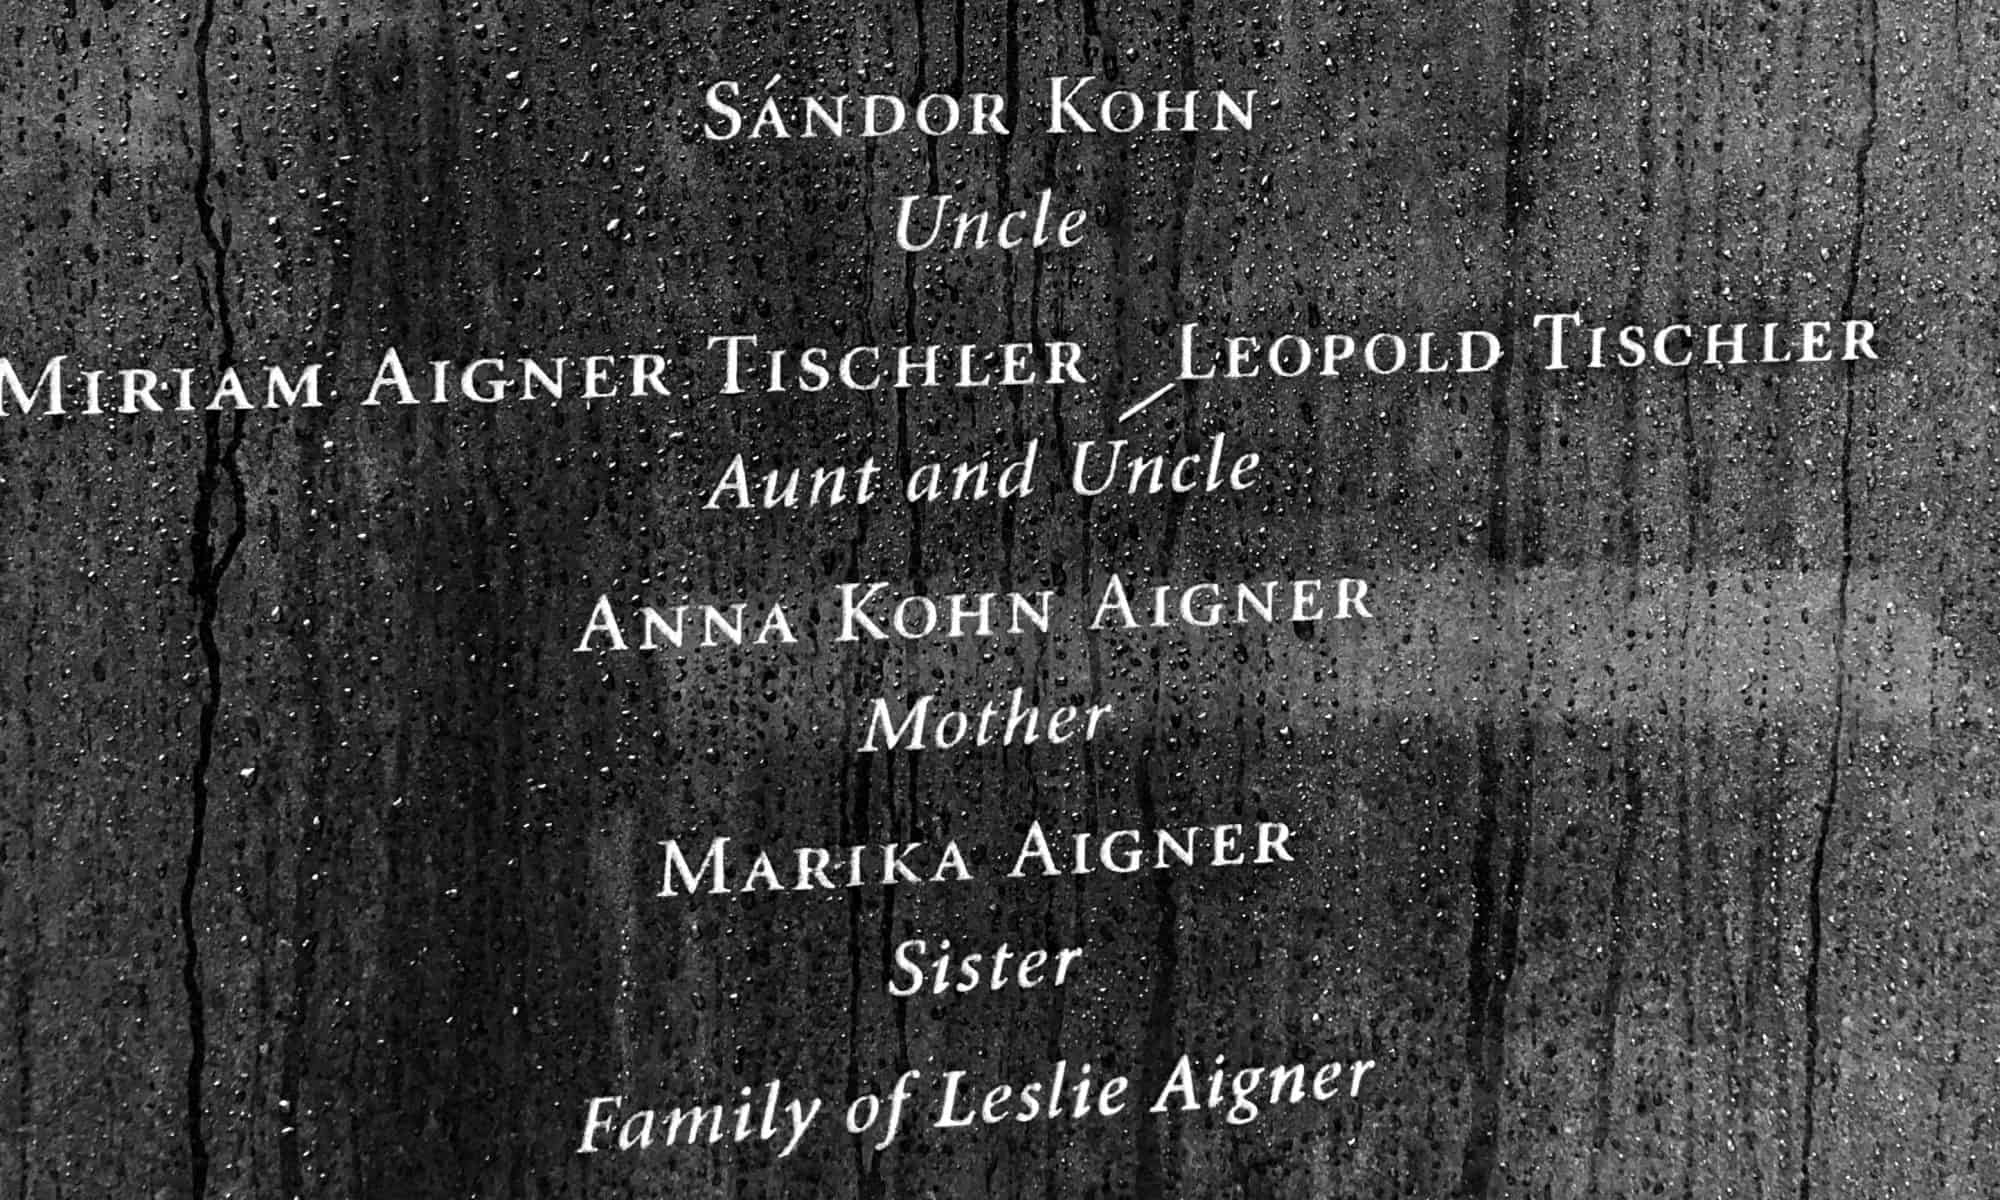 Les Aigner family lost